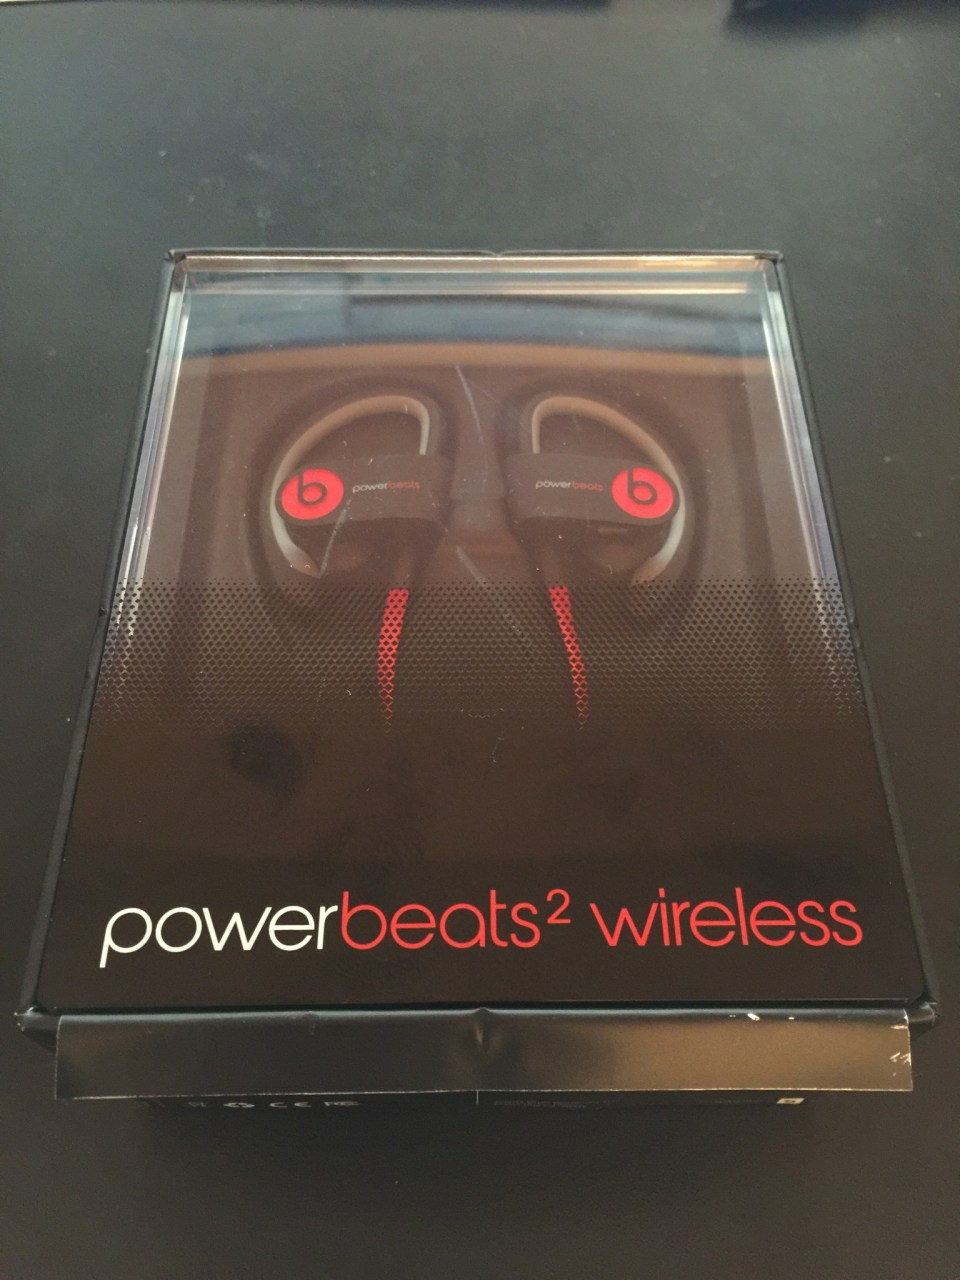 Powerbeats 2 Wireless in packaging